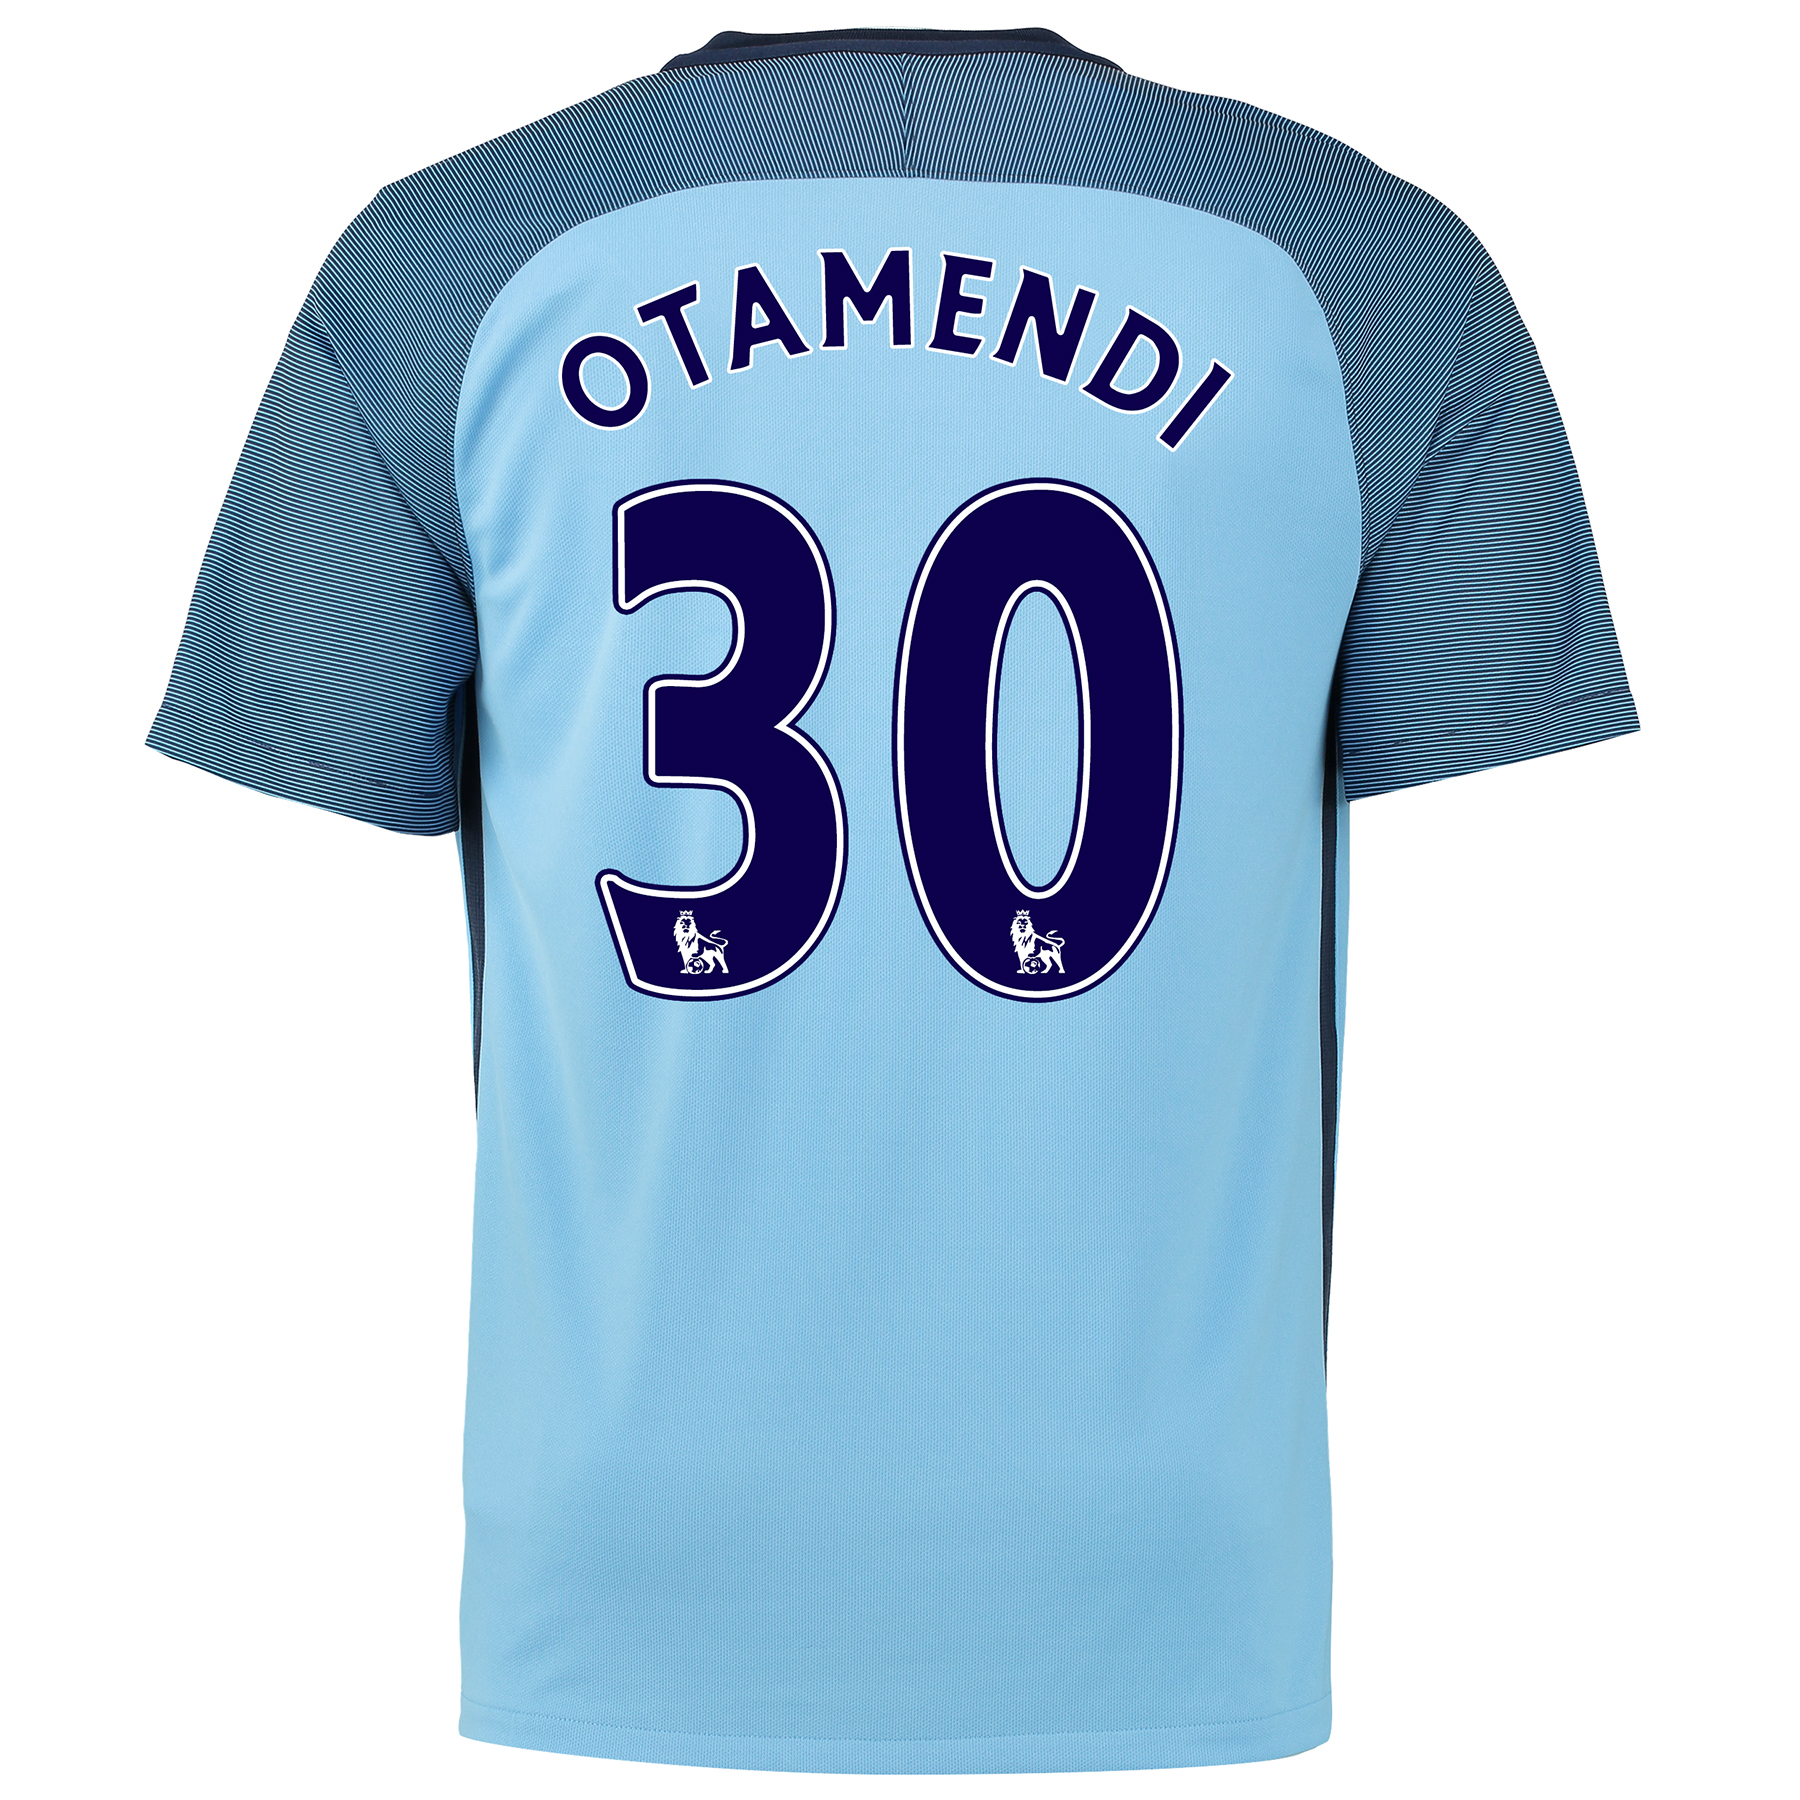 Manchester City Home Shirt 2016-17 with Otamendi 30 printing